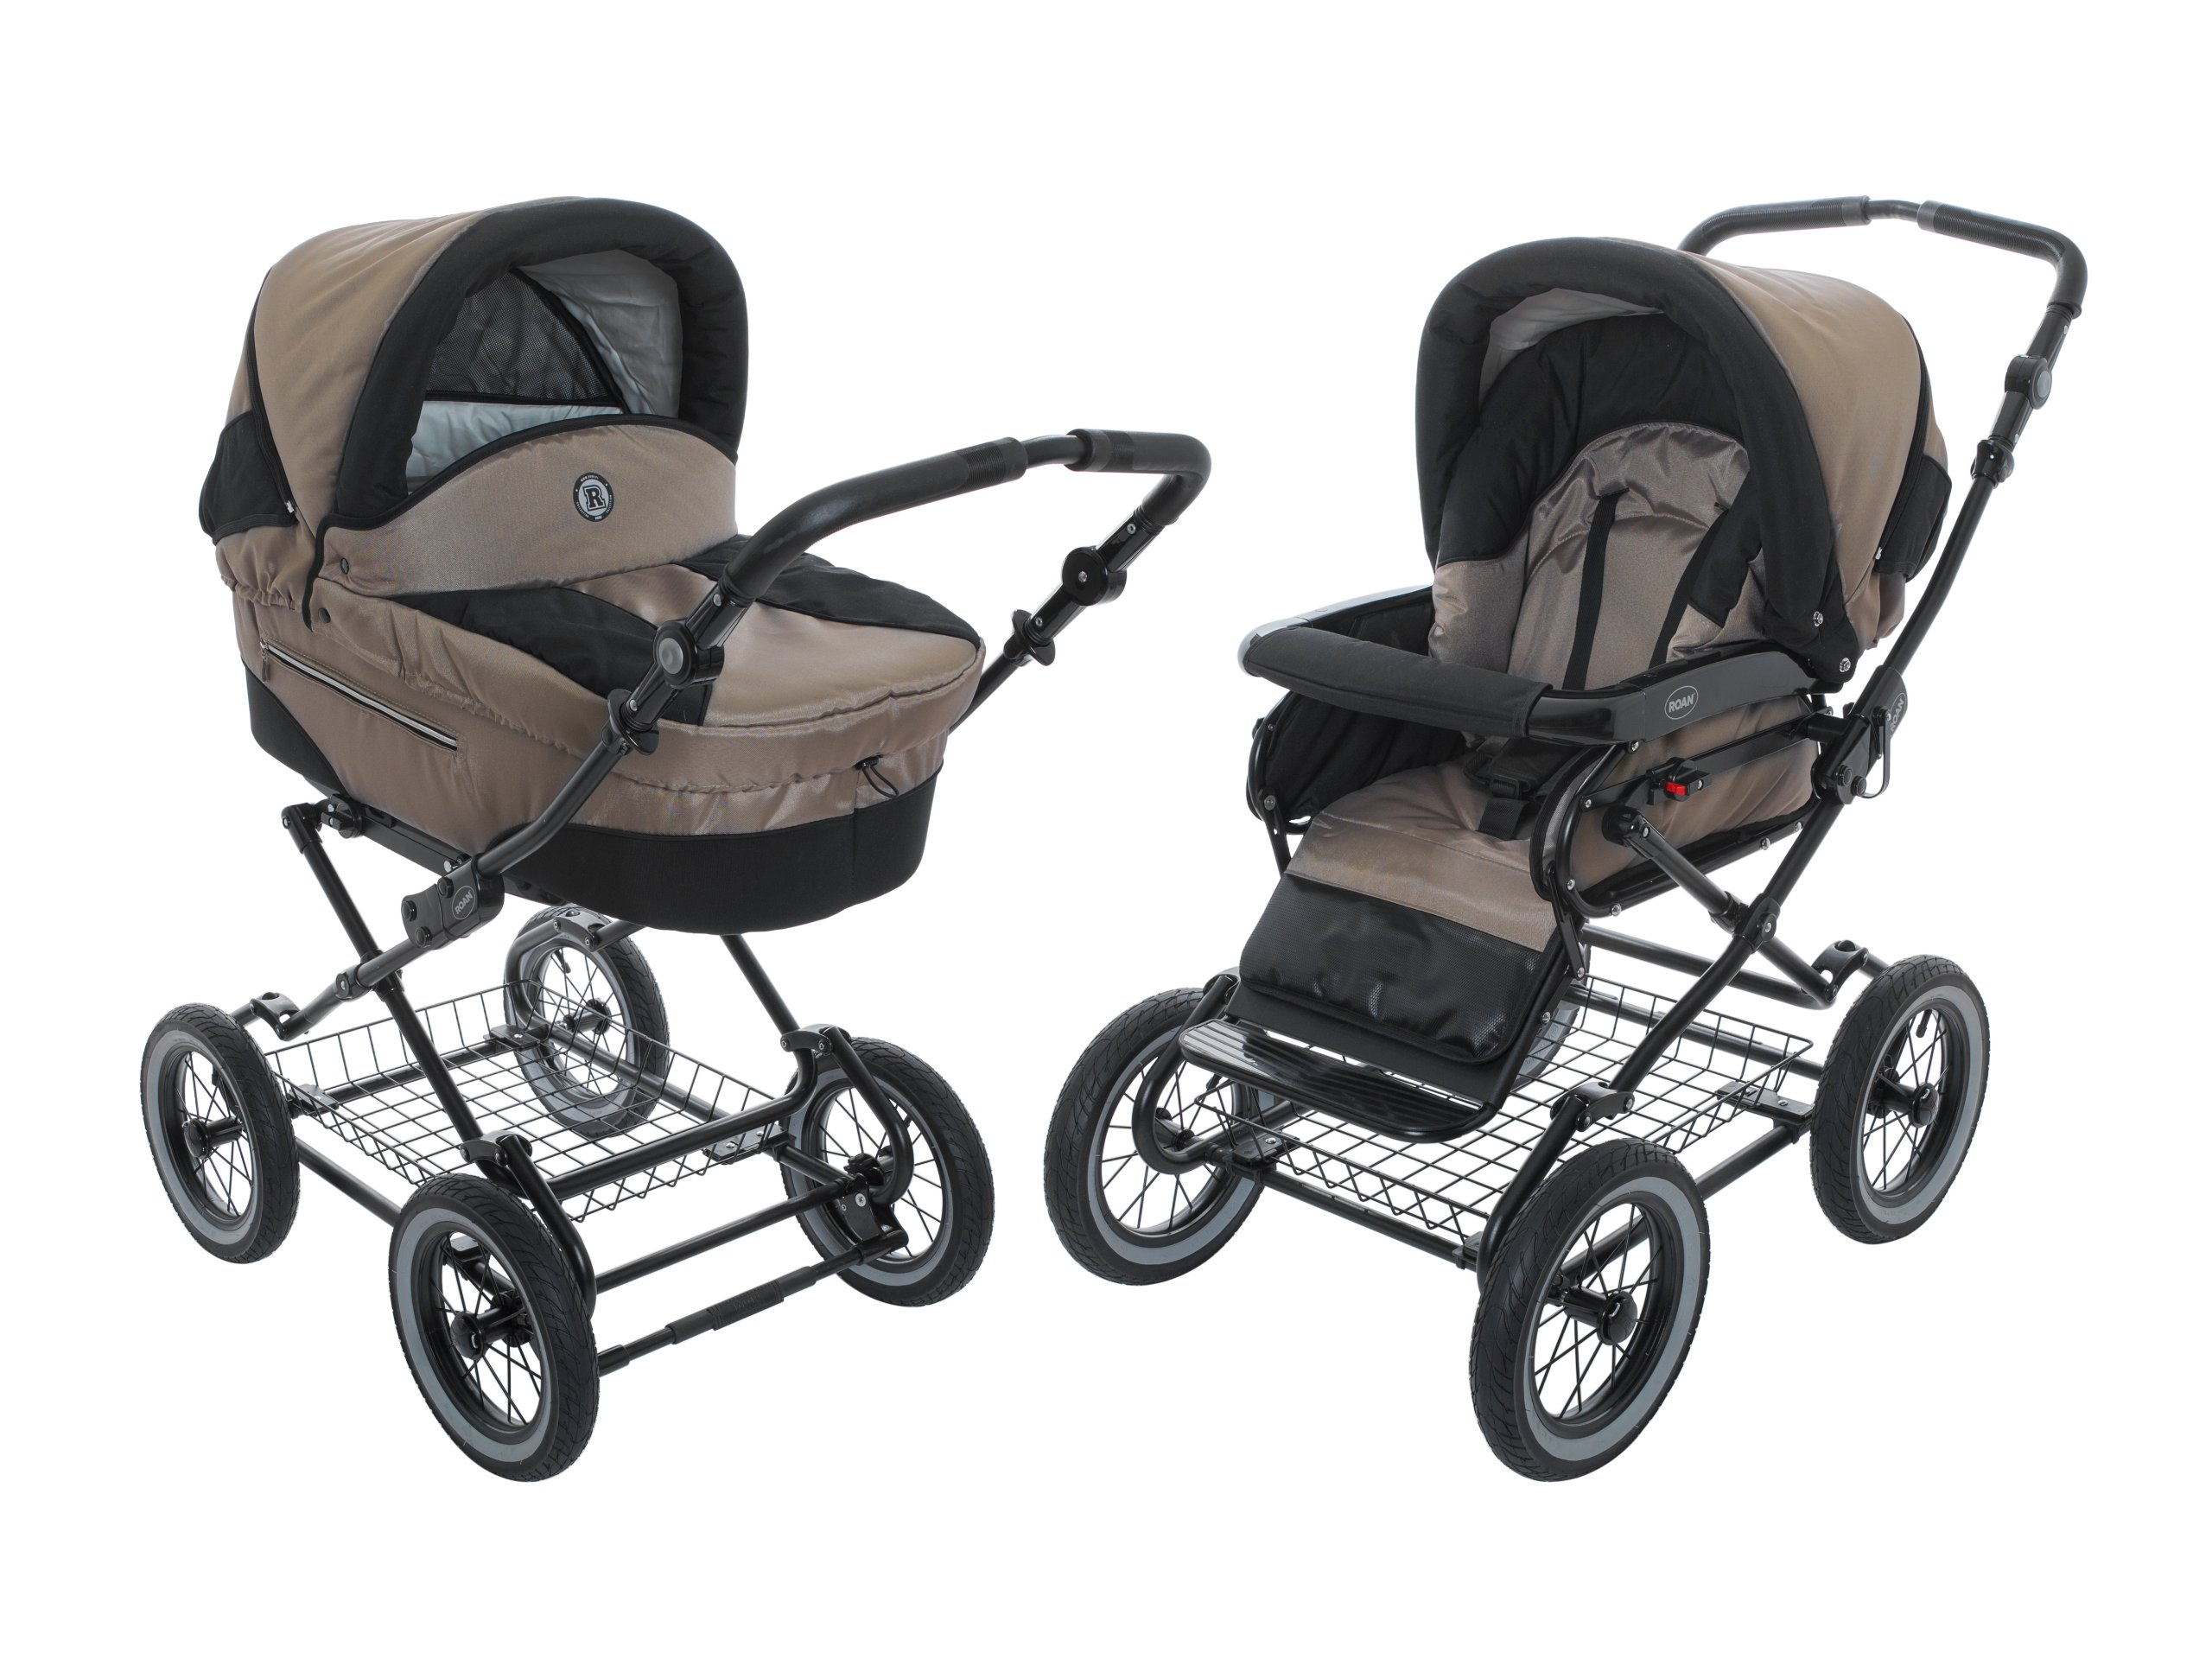 Roan Rocco Classic Pram Stroller 2-in-1 with Bassinet and Seat Unit - Coffee by Roan (Image #1)